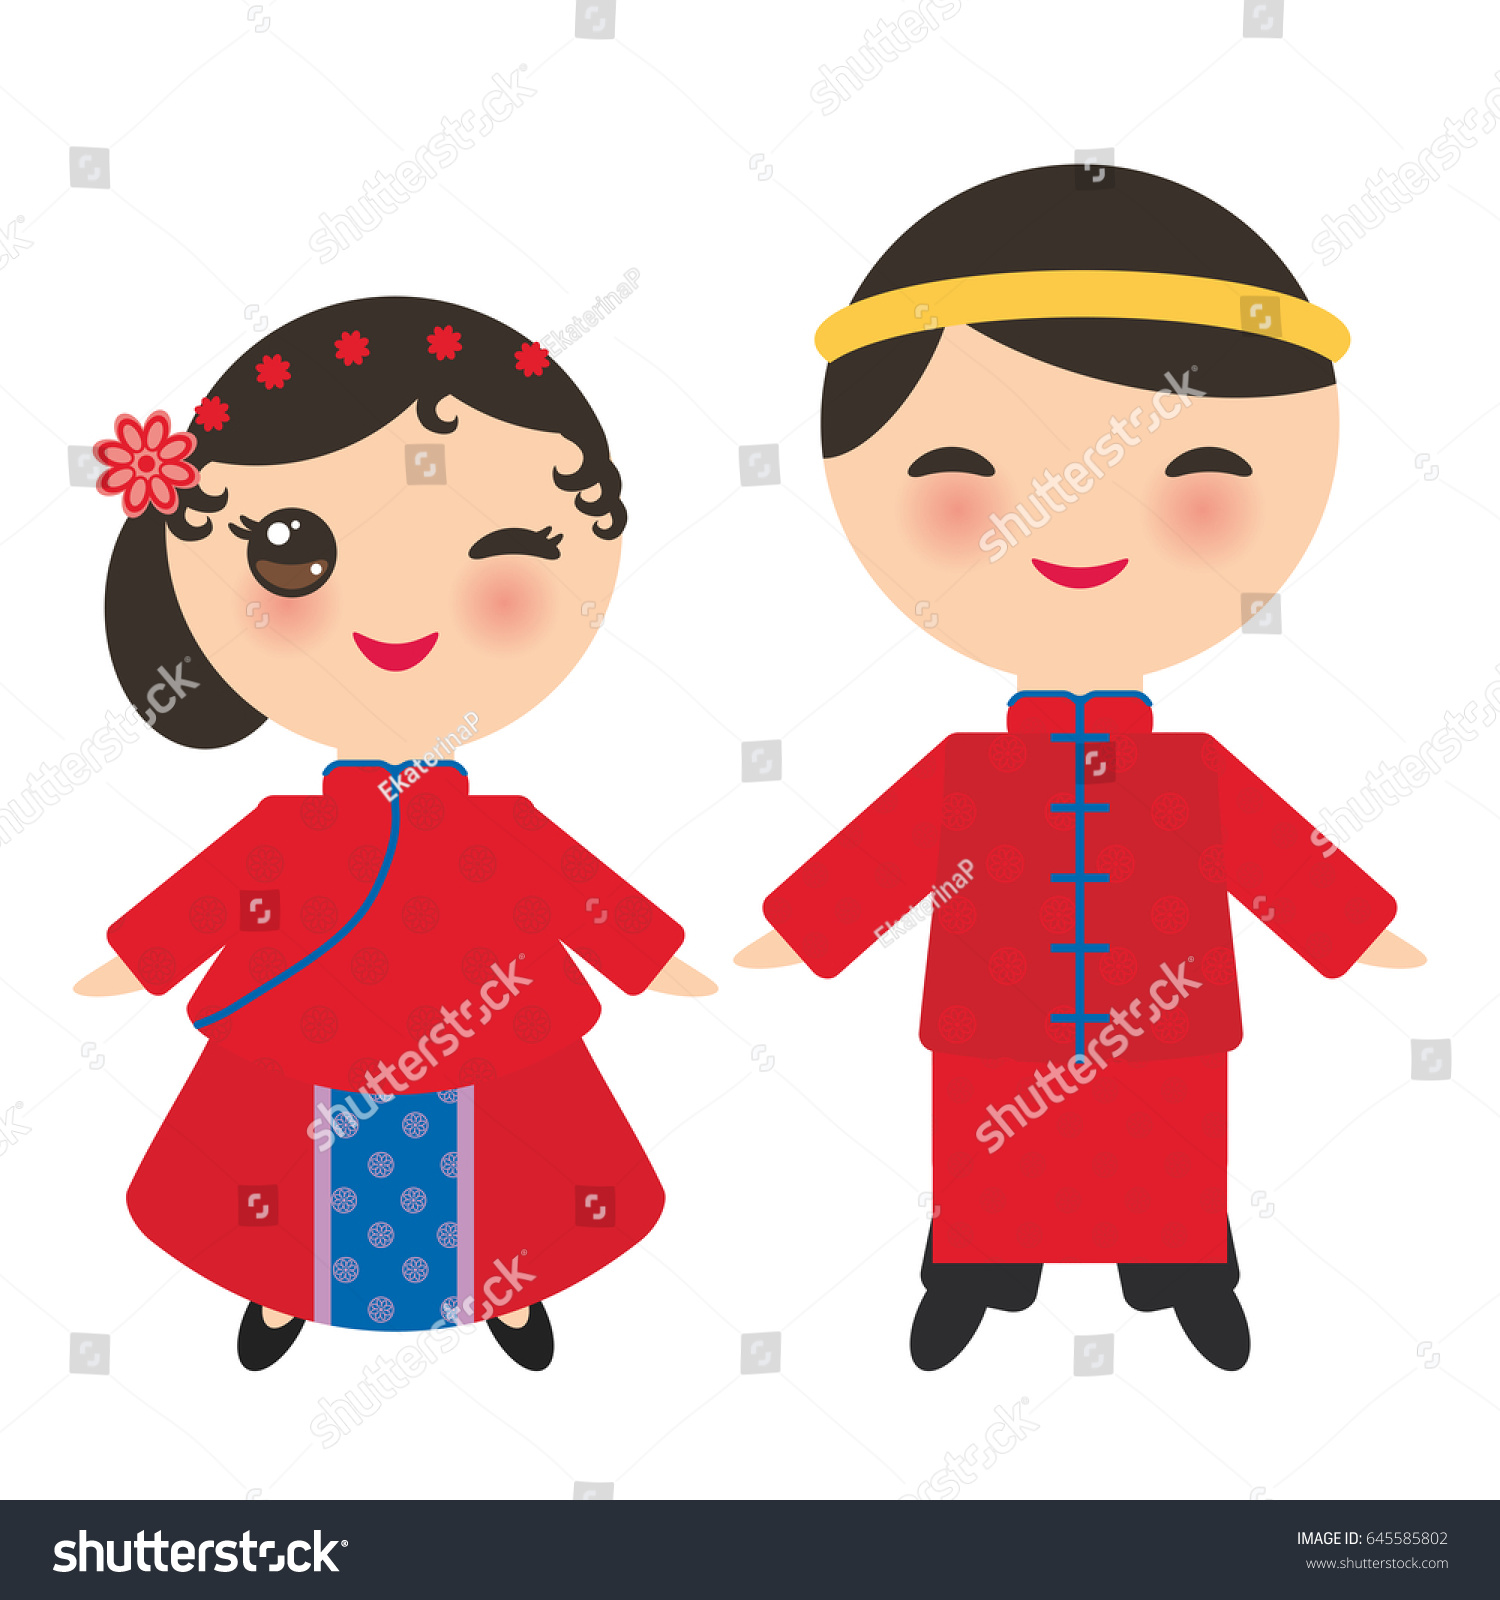 stock-vector-chinese-boy-and-girl-in-national-costume-and-hat-cartoon-children-in-traditional-china-dress-645585802